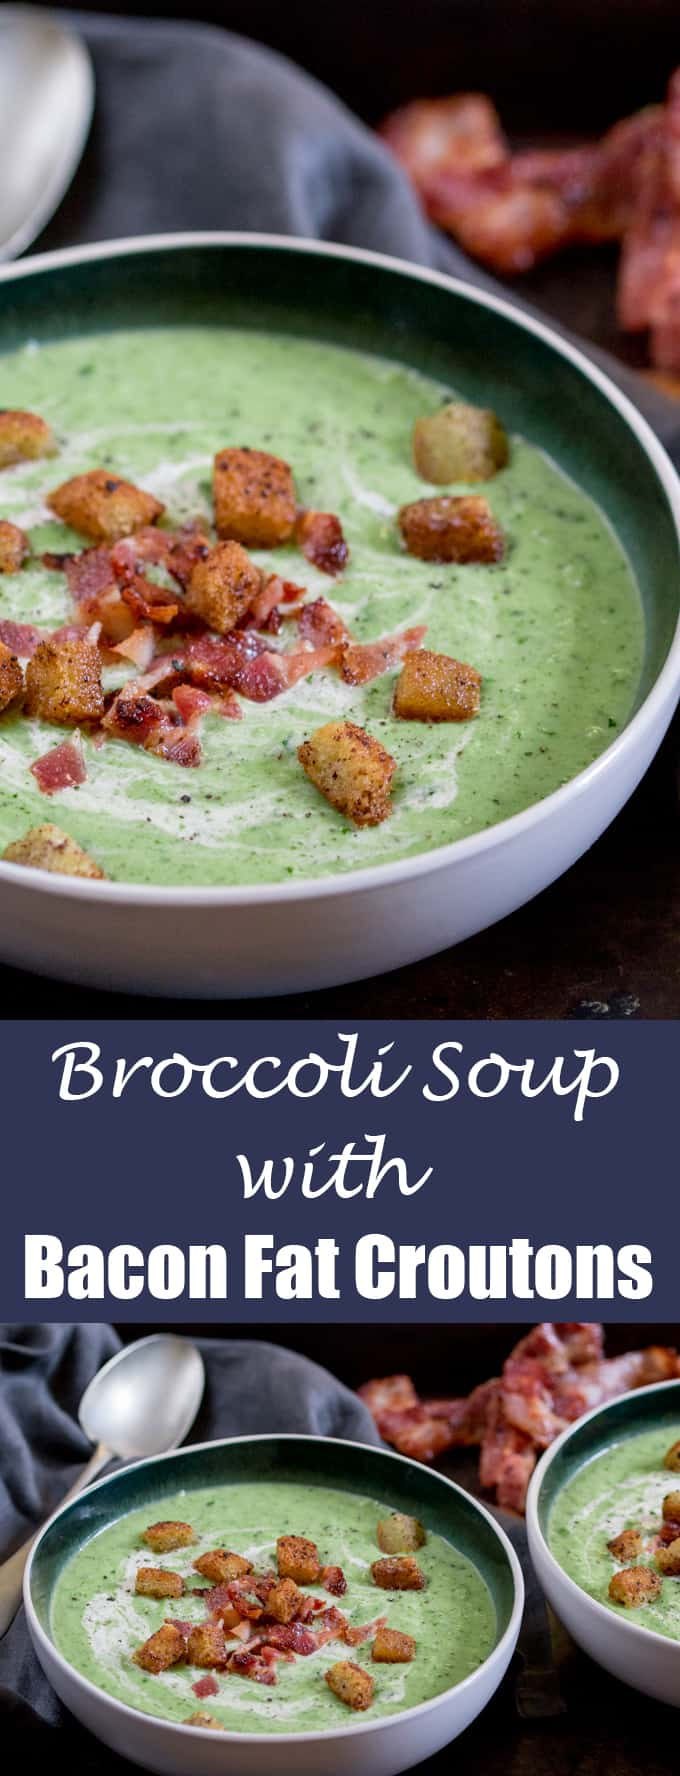 Broccoli Cheese Soup with Bacon Fat Croutons - Speedy comfort food in ...